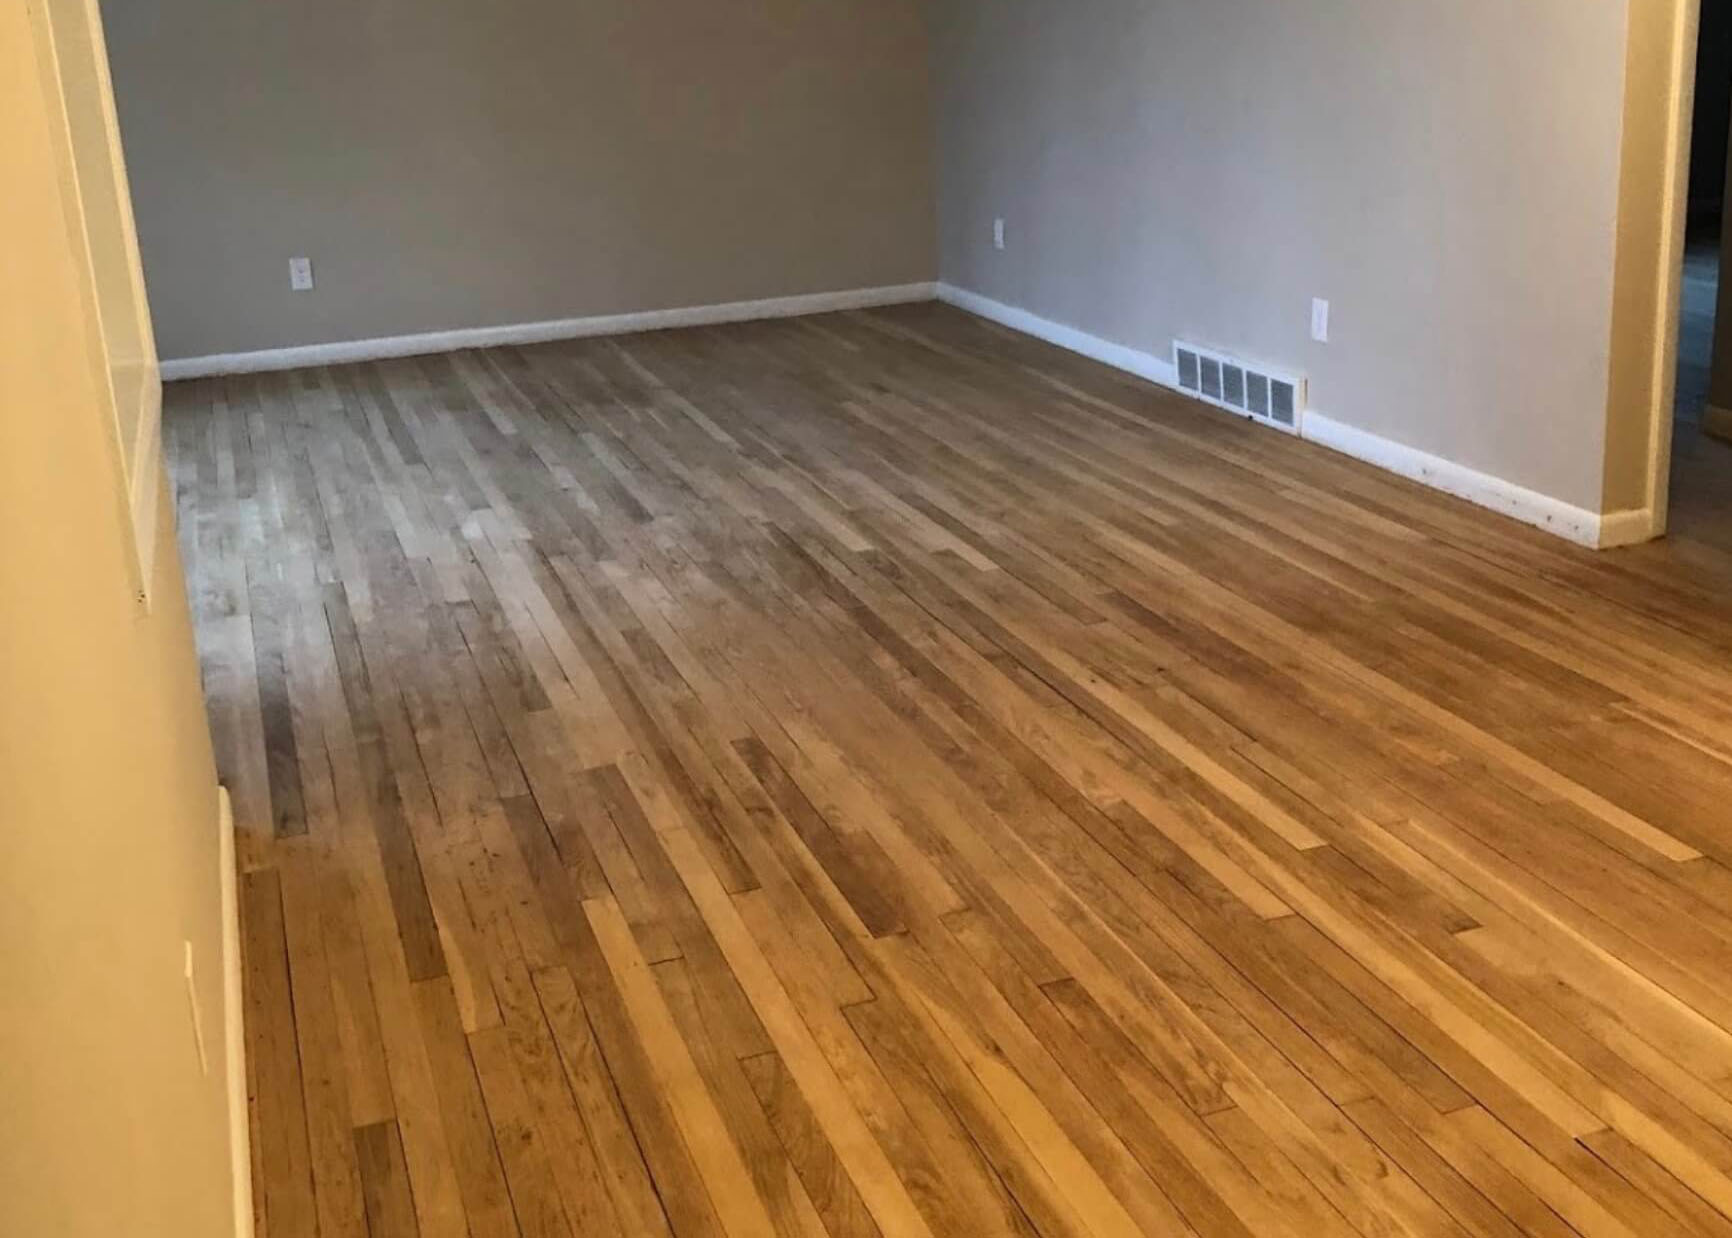 milwaukee hardwood floor refinishing